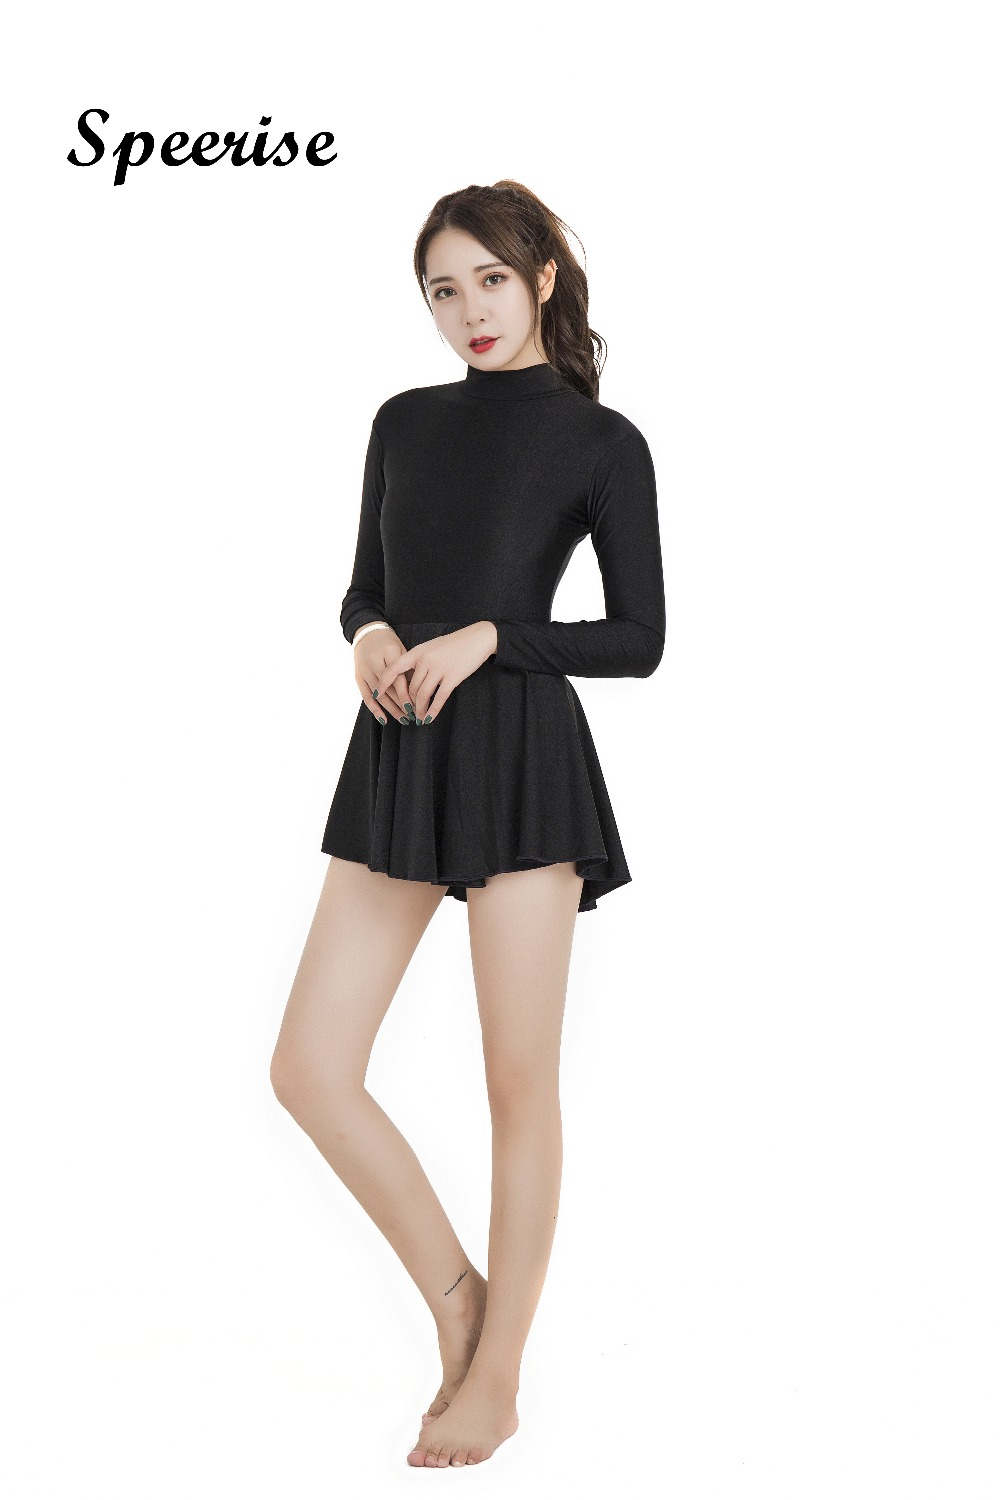 Speerise Womens Turtleneck Long Sleeve Skirted Leotard Ballet Dance Gymnastic Dress Scoop Neck Gymnastics Dresses цены